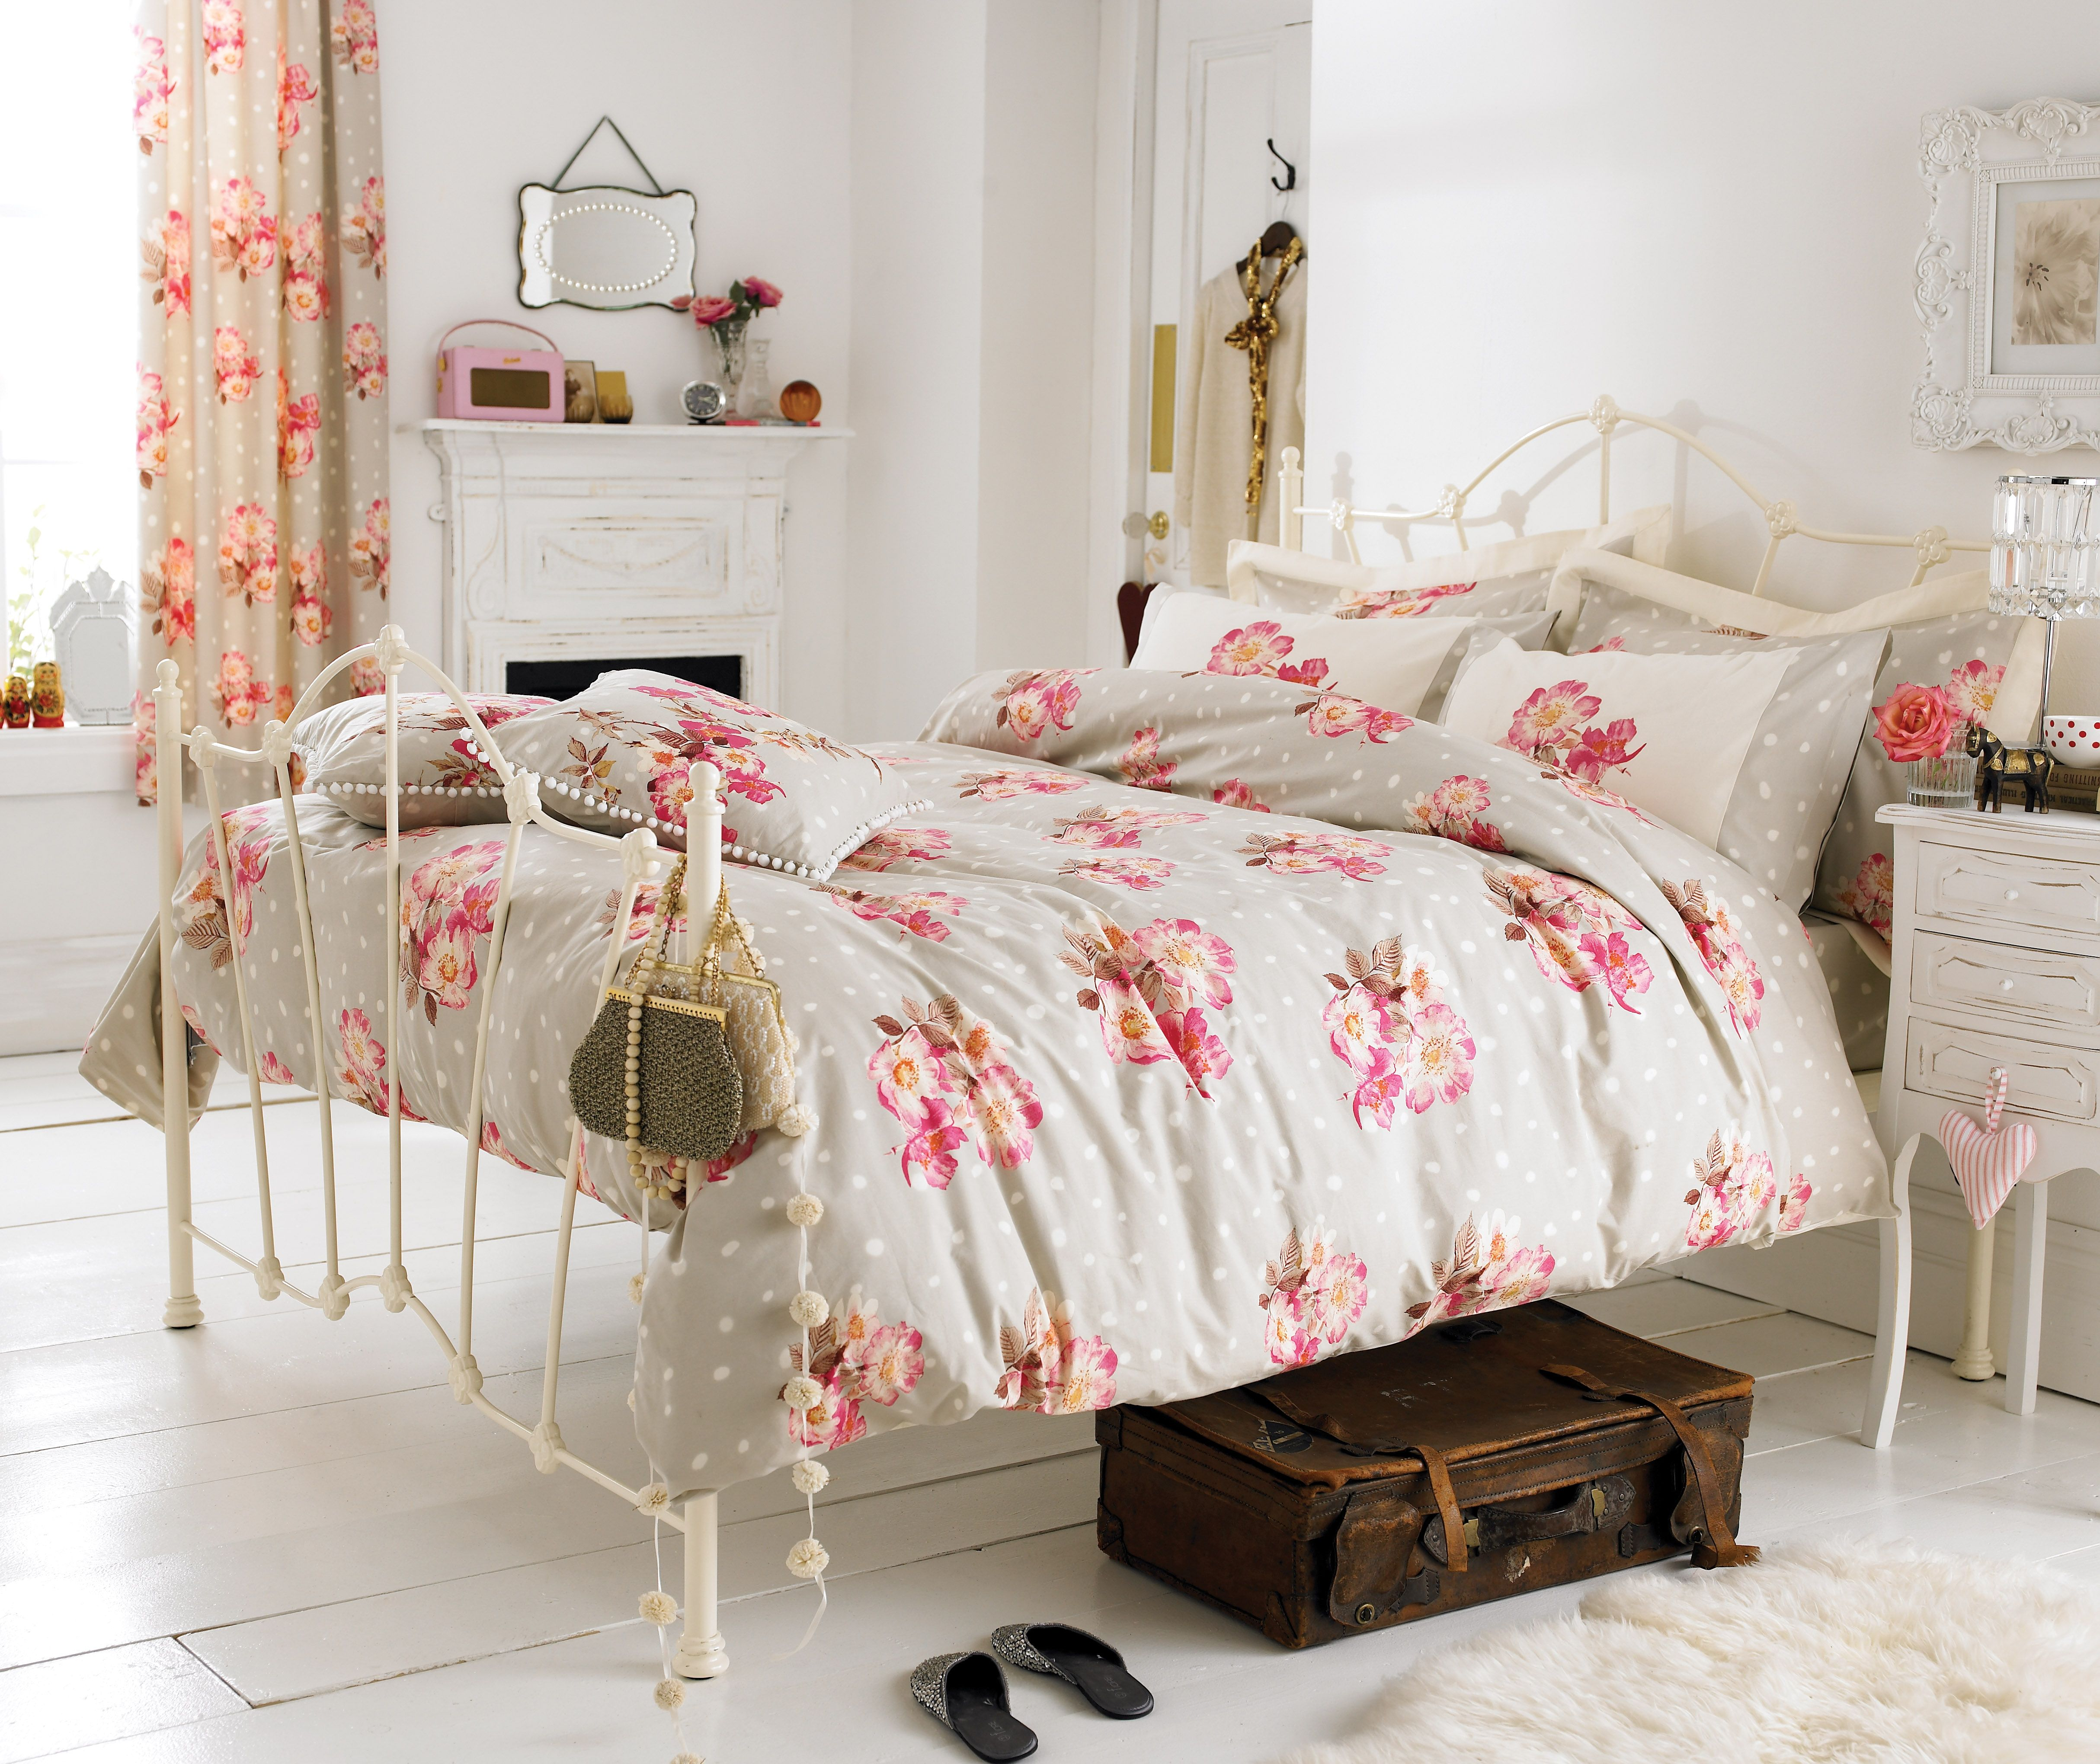 Vintage White Metal Bed, Floral Bed Sheets And Vintage Suitcase. ♥